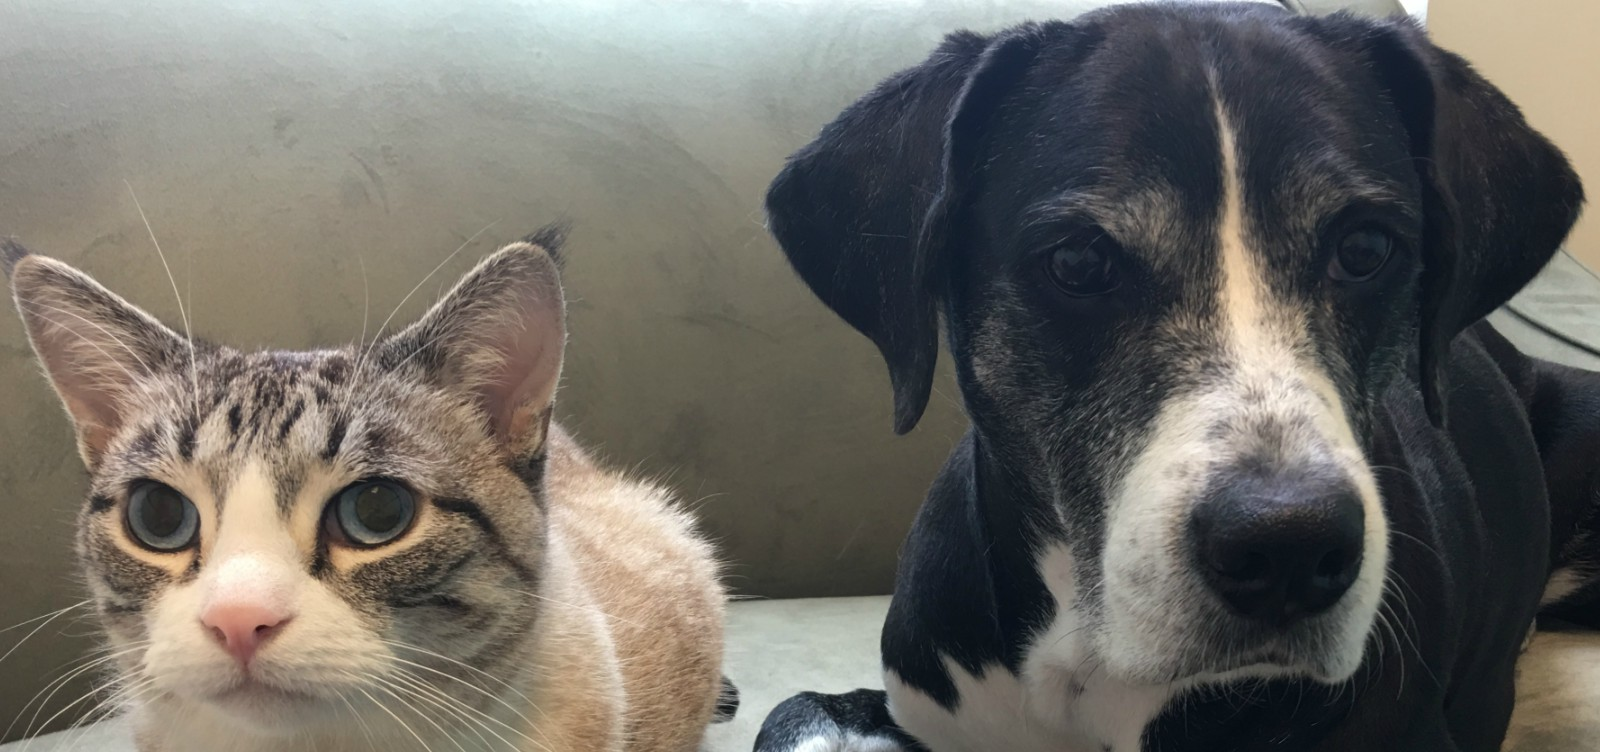 Dog and cat at the veterinarian